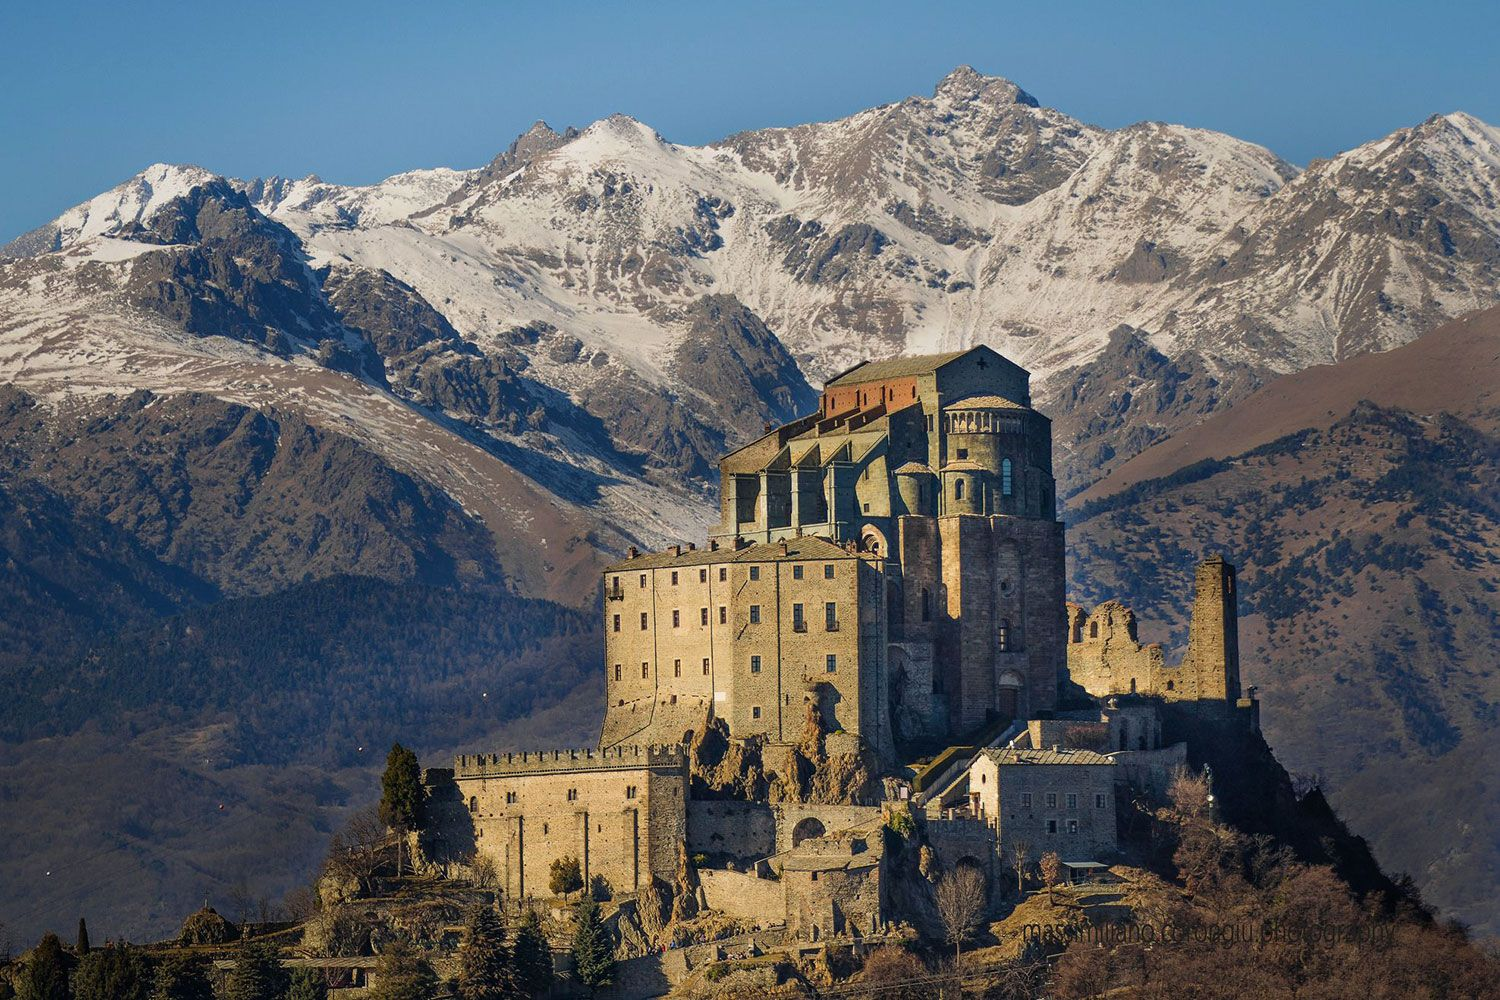 Saint Michael's Abbey in Piedmont has been defying the ravages of nature and man for more than 900 years.